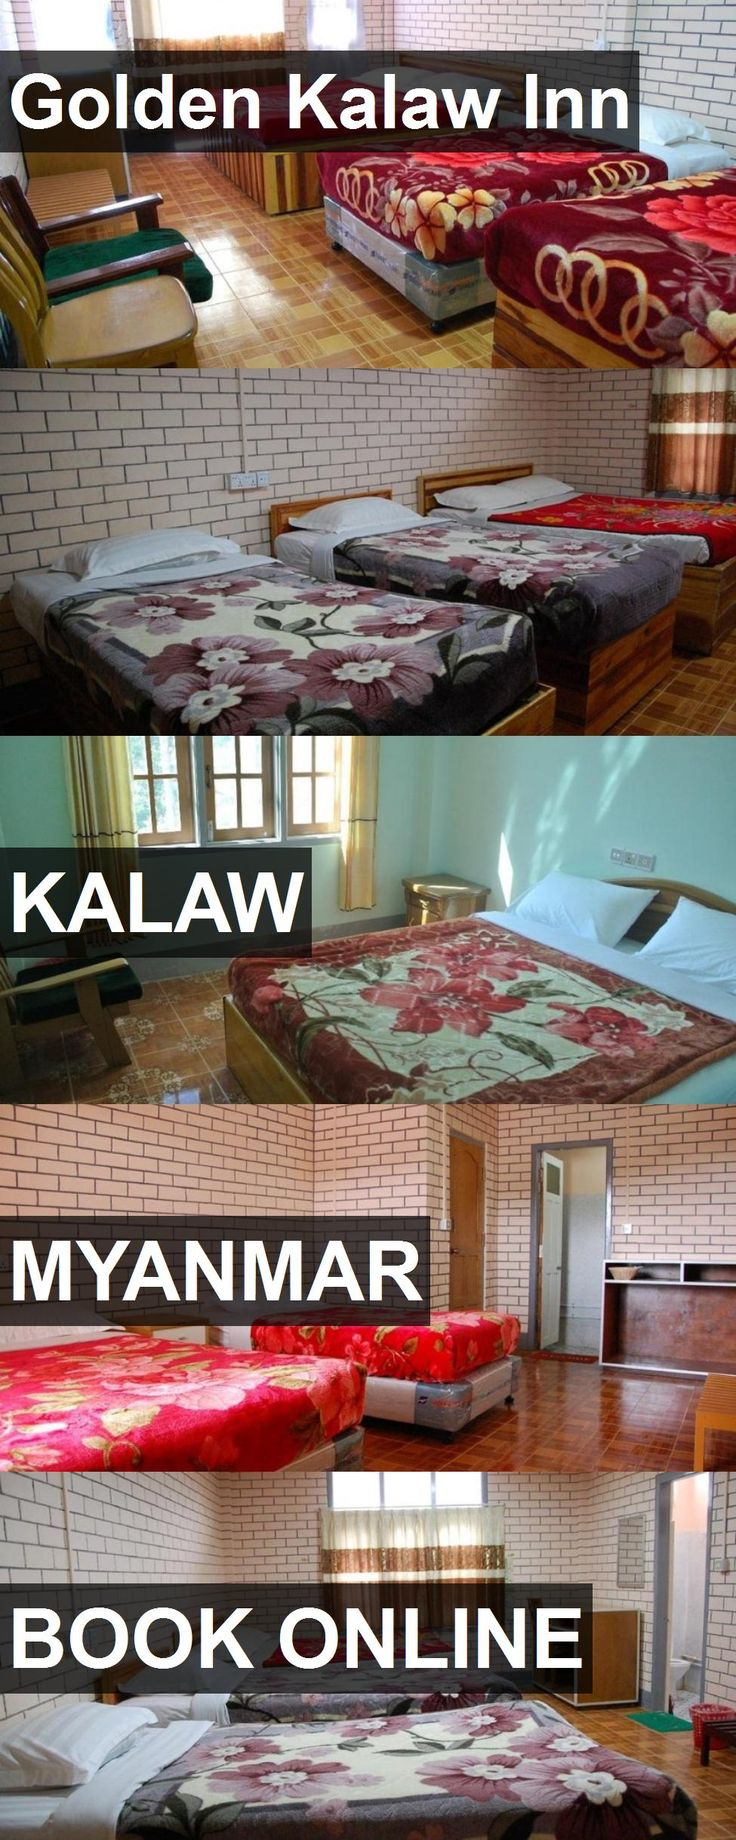 Hotel Golden Kalaw Inn in Kalaw, Myanmar. For more information, photos, reviews and best prices please follow the link. #Myanmar #Kalaw #travel #vacation #hotel